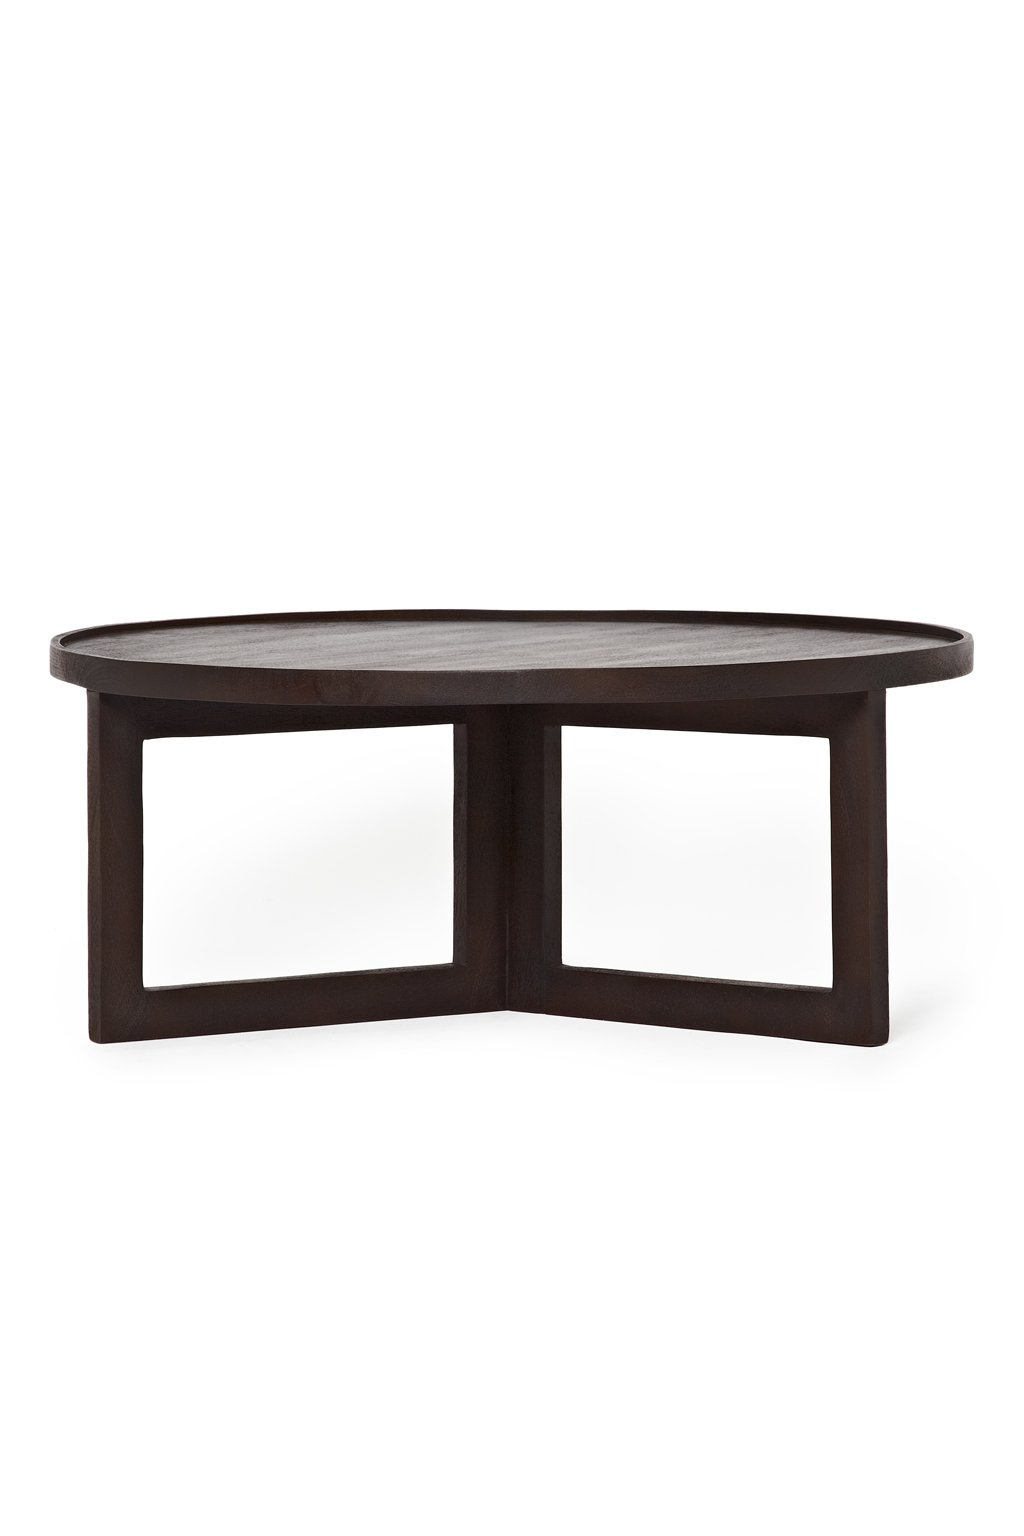 Lipped coffee table occasional furniture french connection for Furniture x connection